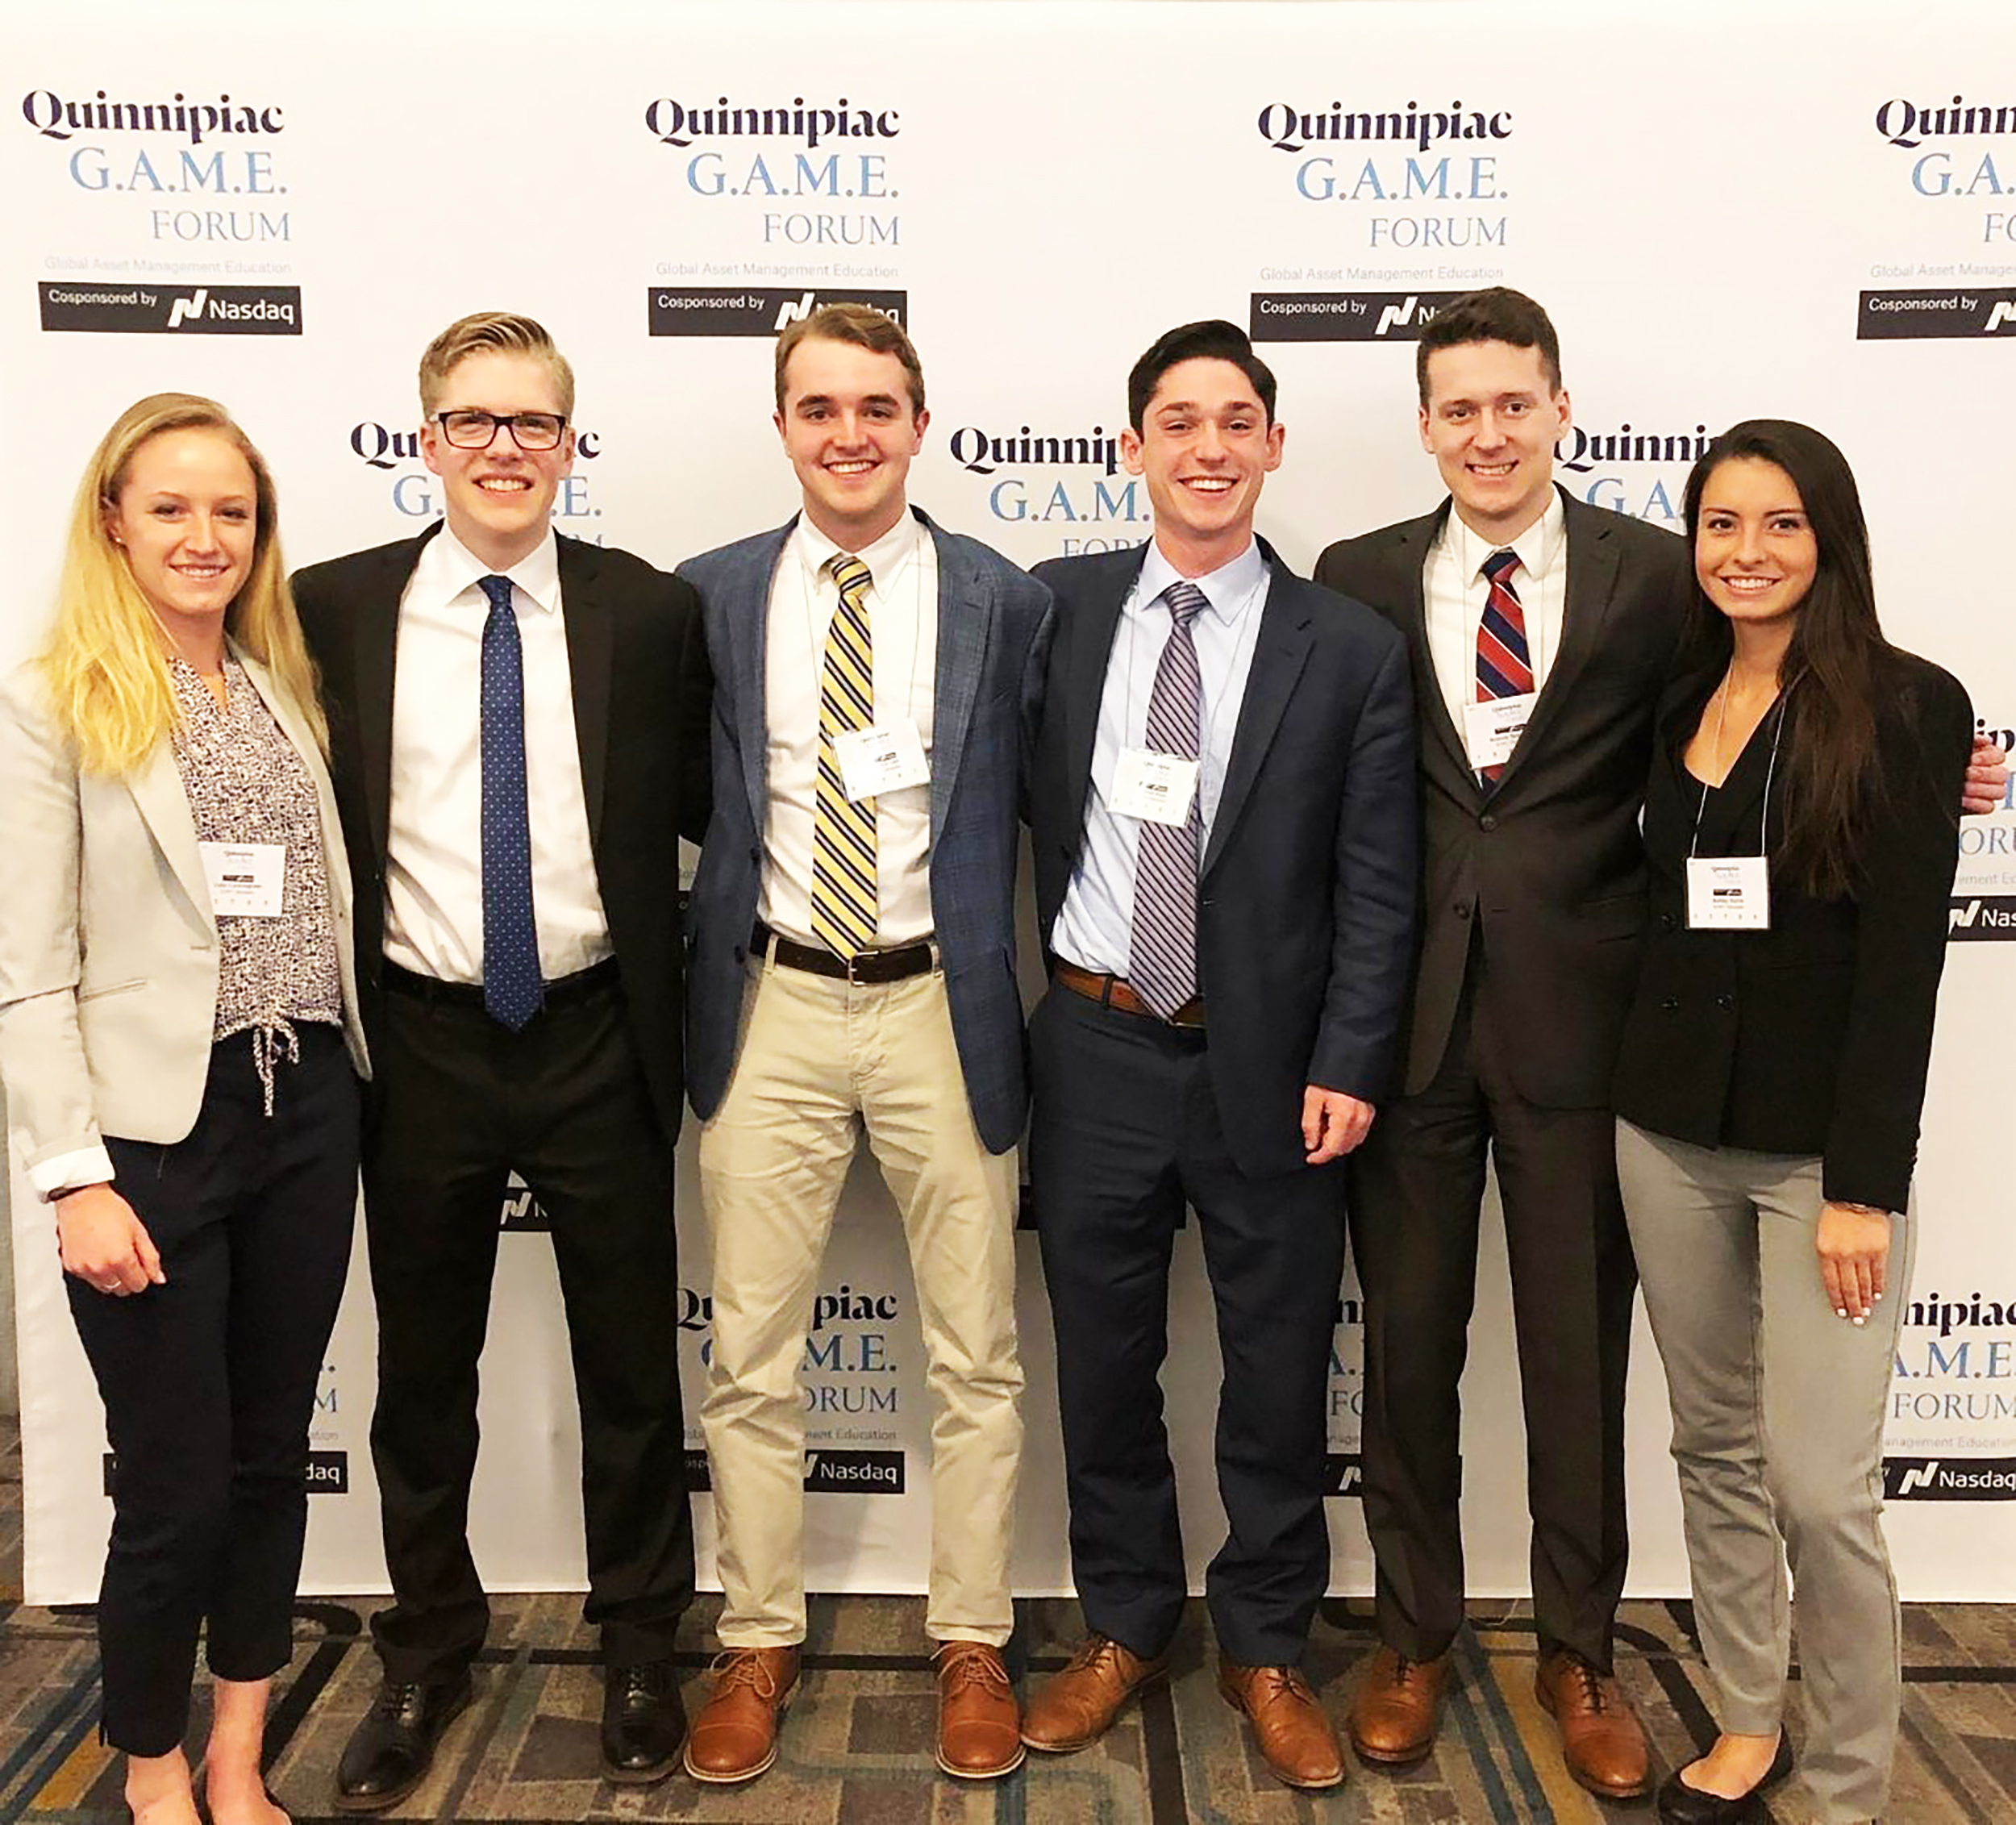 The Student Managed Investment Fund is an on-campus organization responsible for collaboratively deciding where to invest $300,000 of Geneseo's endowment fund. Last March, SMIF's executive board (pictured above) had the opportunity to attend the Global Asset Management Education Forum in New York City (Courtesy of James Anania).